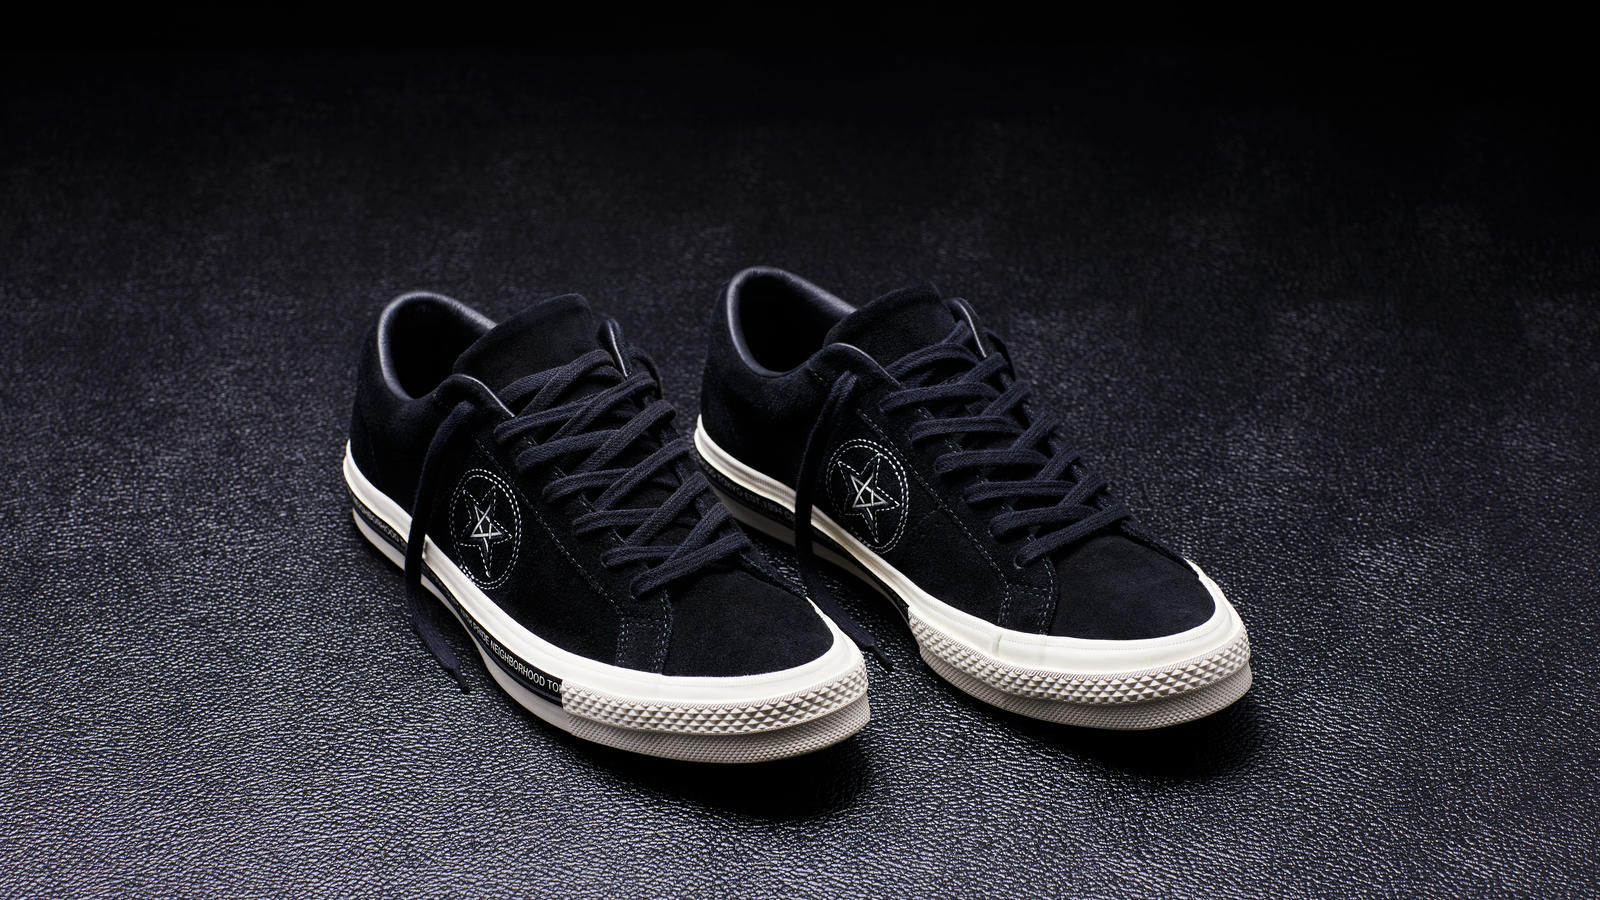 half off 58ad6 0c26c Converse and Neighborhood Announce New Moto-Inspired Collaboration 11